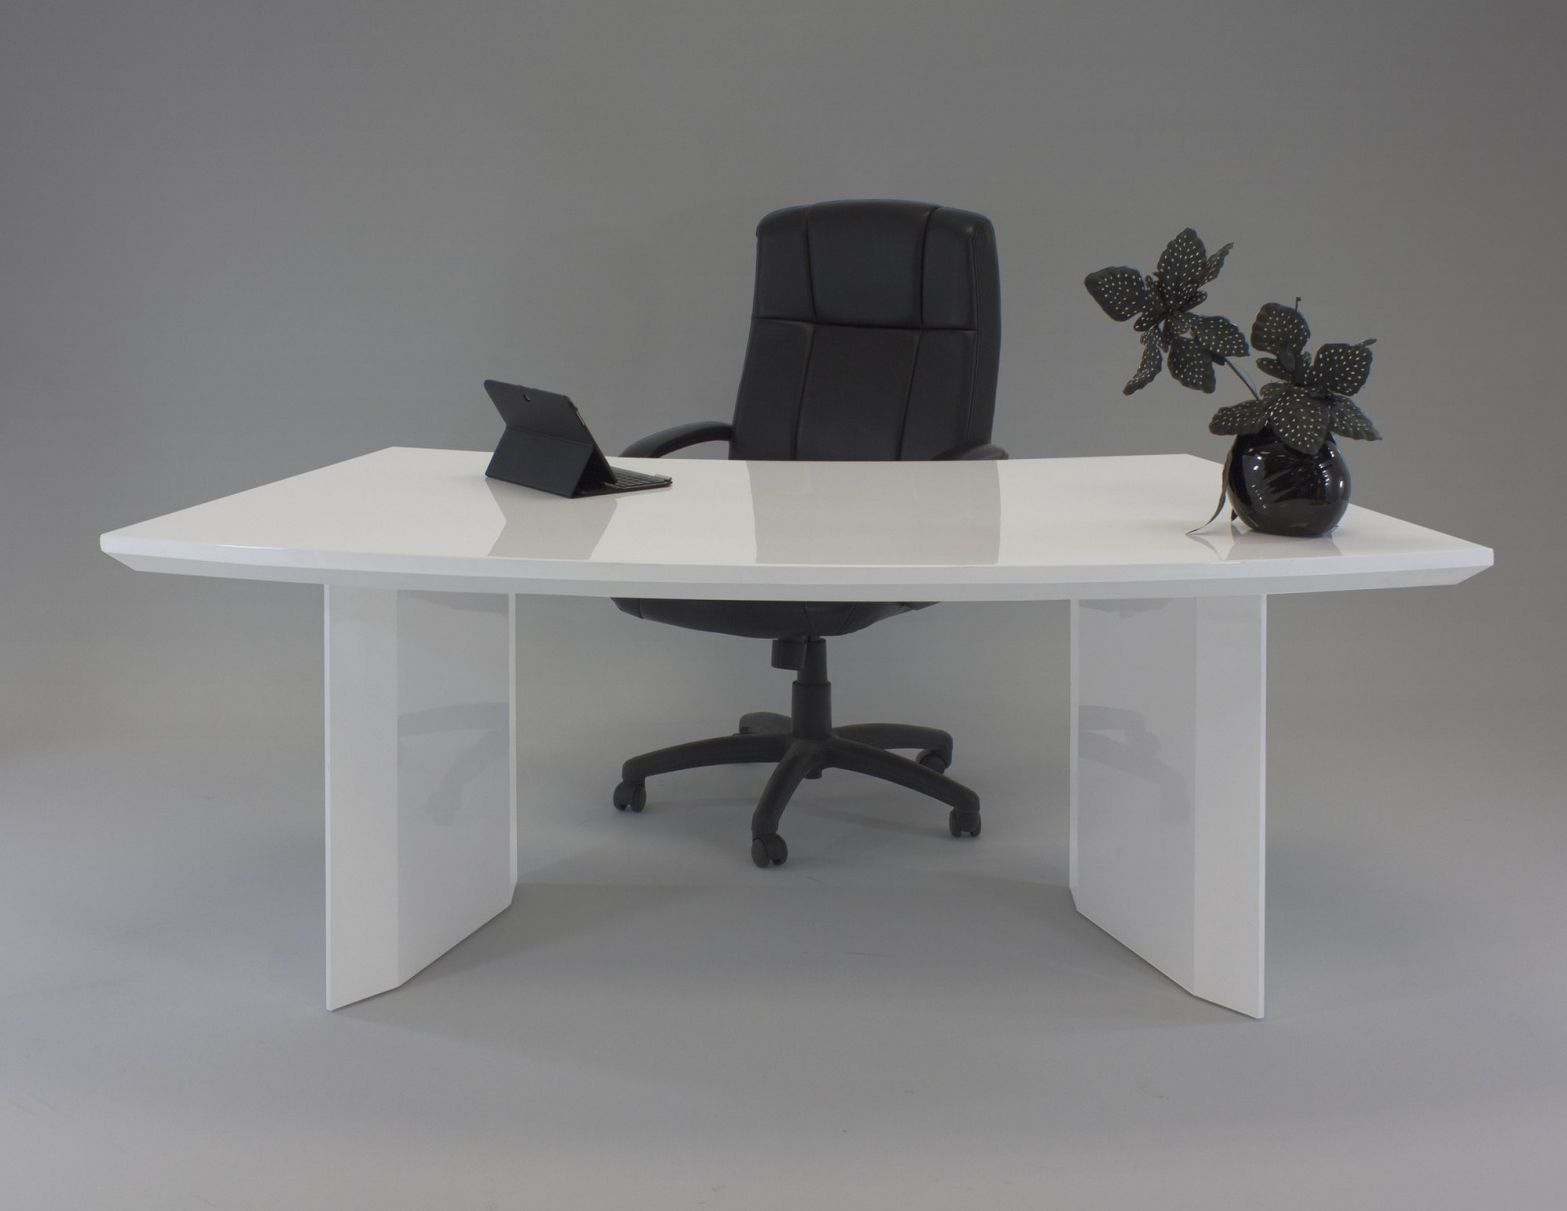 curved office desks. 2019 Curved Executive Office Desk - Used Home Furniture Check More At Http:/ Desks I